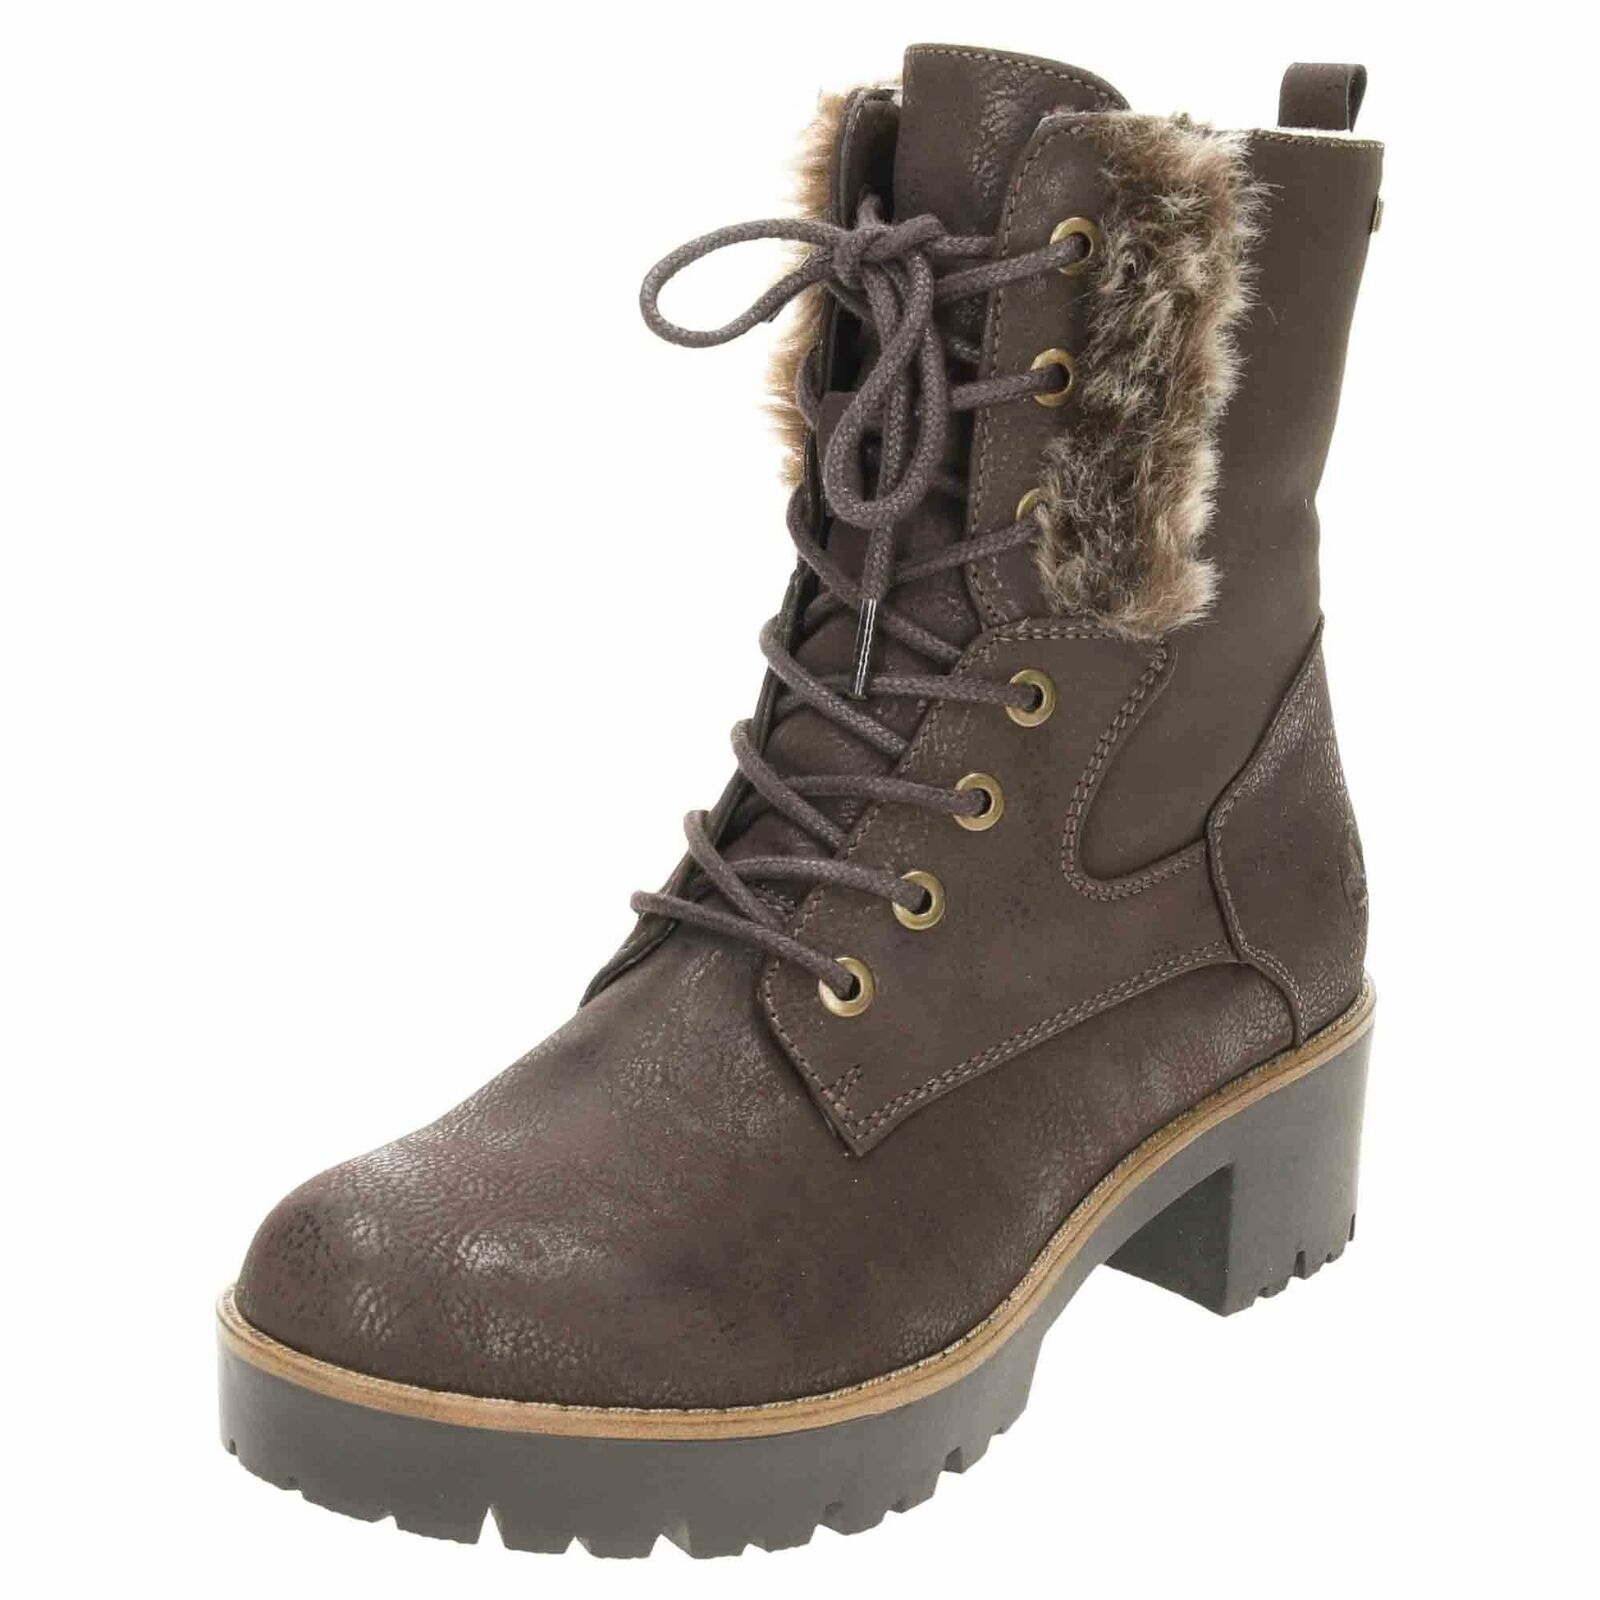 Rieker Tex Lace Up Zip Chunky Ankle Stiefel 96414-25 Warm Shower-Proof braun Cosy